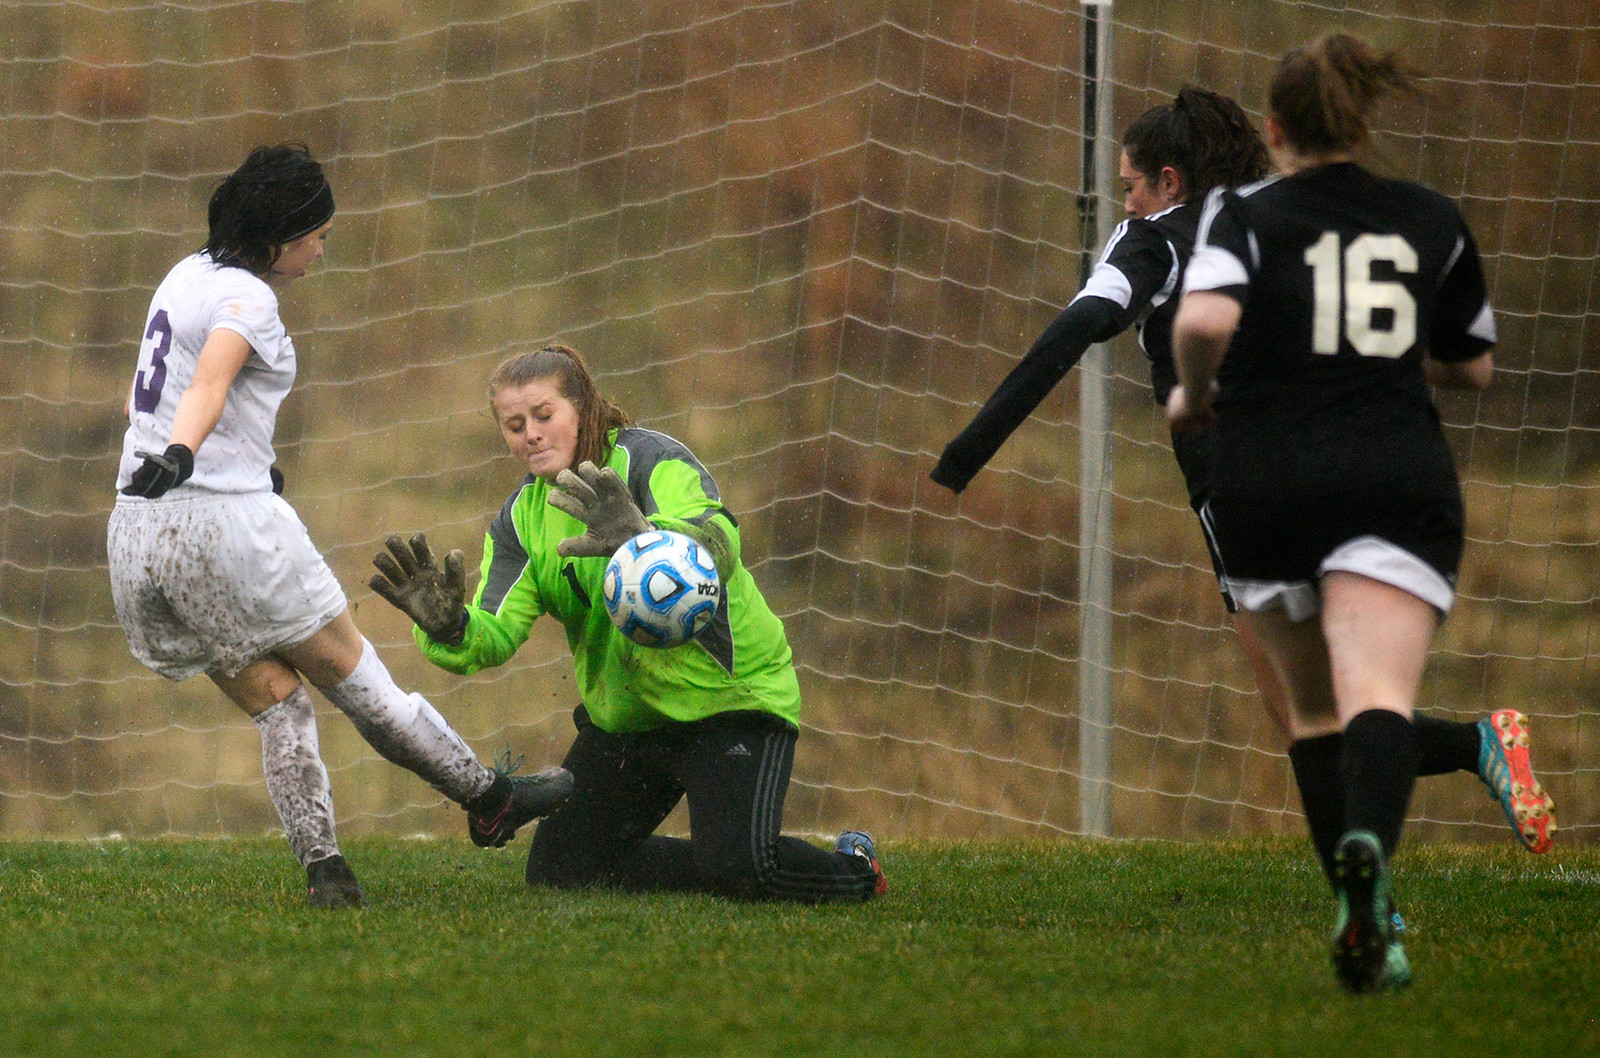 Hampshire freshman Alessa Carranza (cq) shoots the ball as Woodstock North goalkeeper Kylie Finch misses the save Monday April 3, 2017 at Hampshire High School. Woodstock North won 3-2.